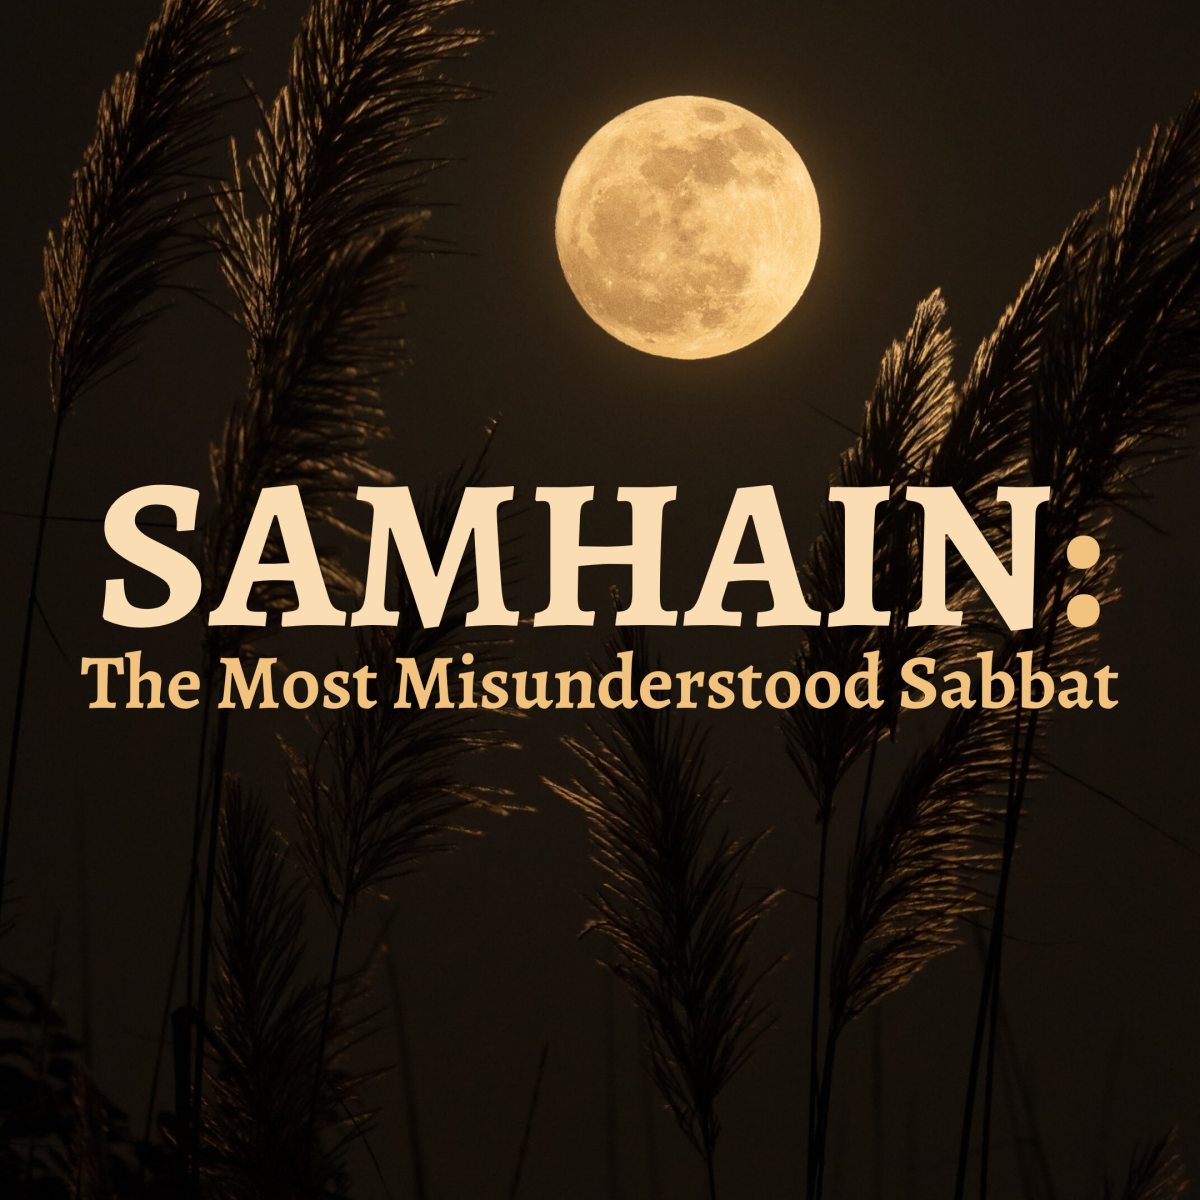 Wiccan Wheel of the Year: What Is Samhain?